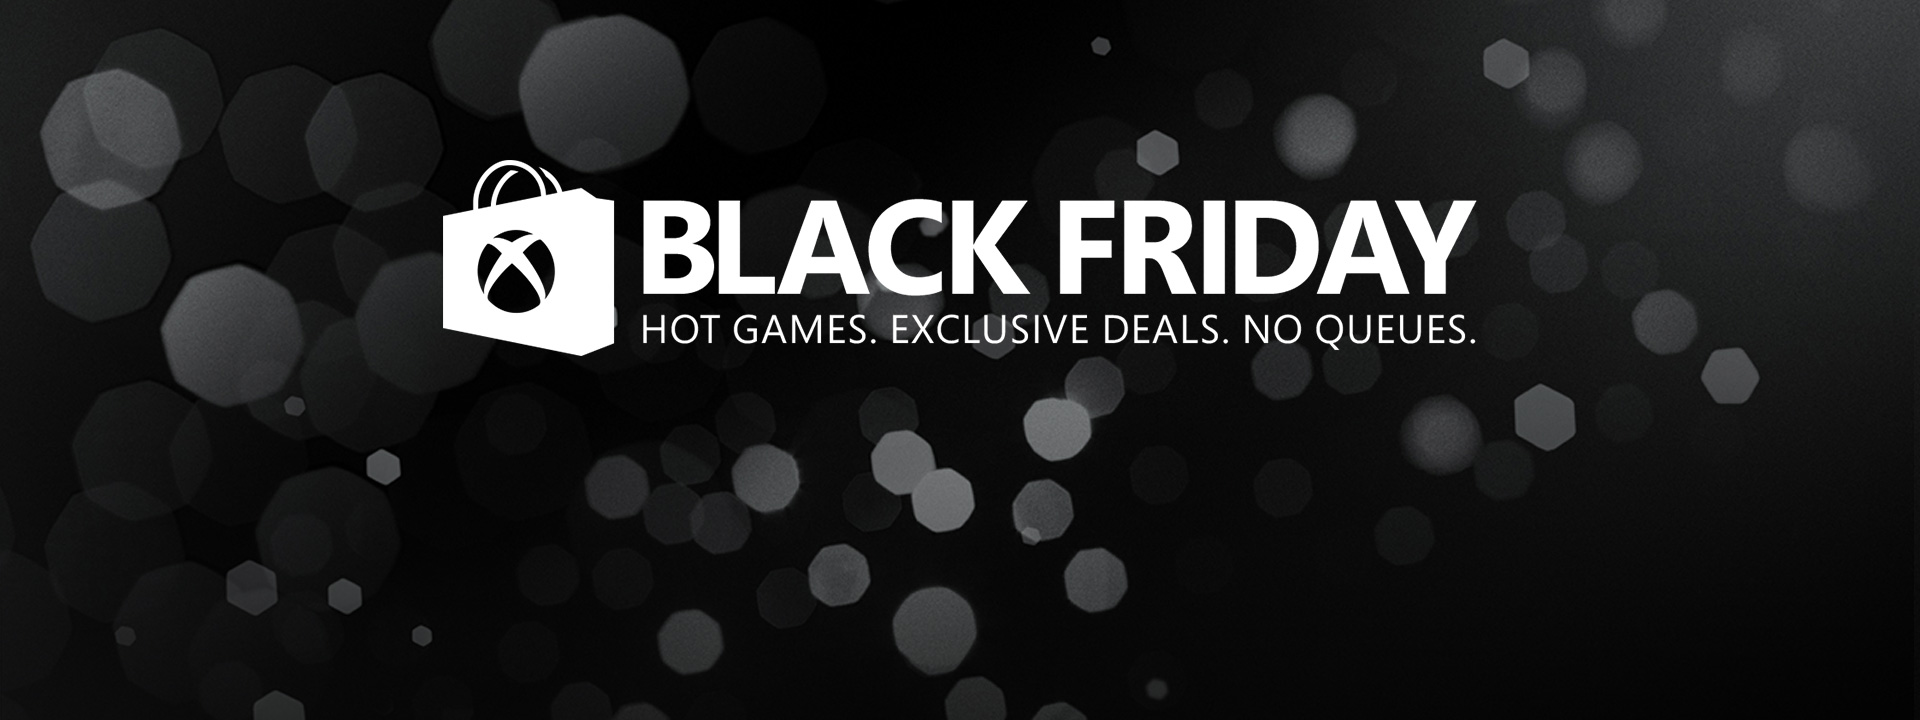 Black Friday Deals: $50 Off Xbox One S, Up To 50% Off Games And More ...